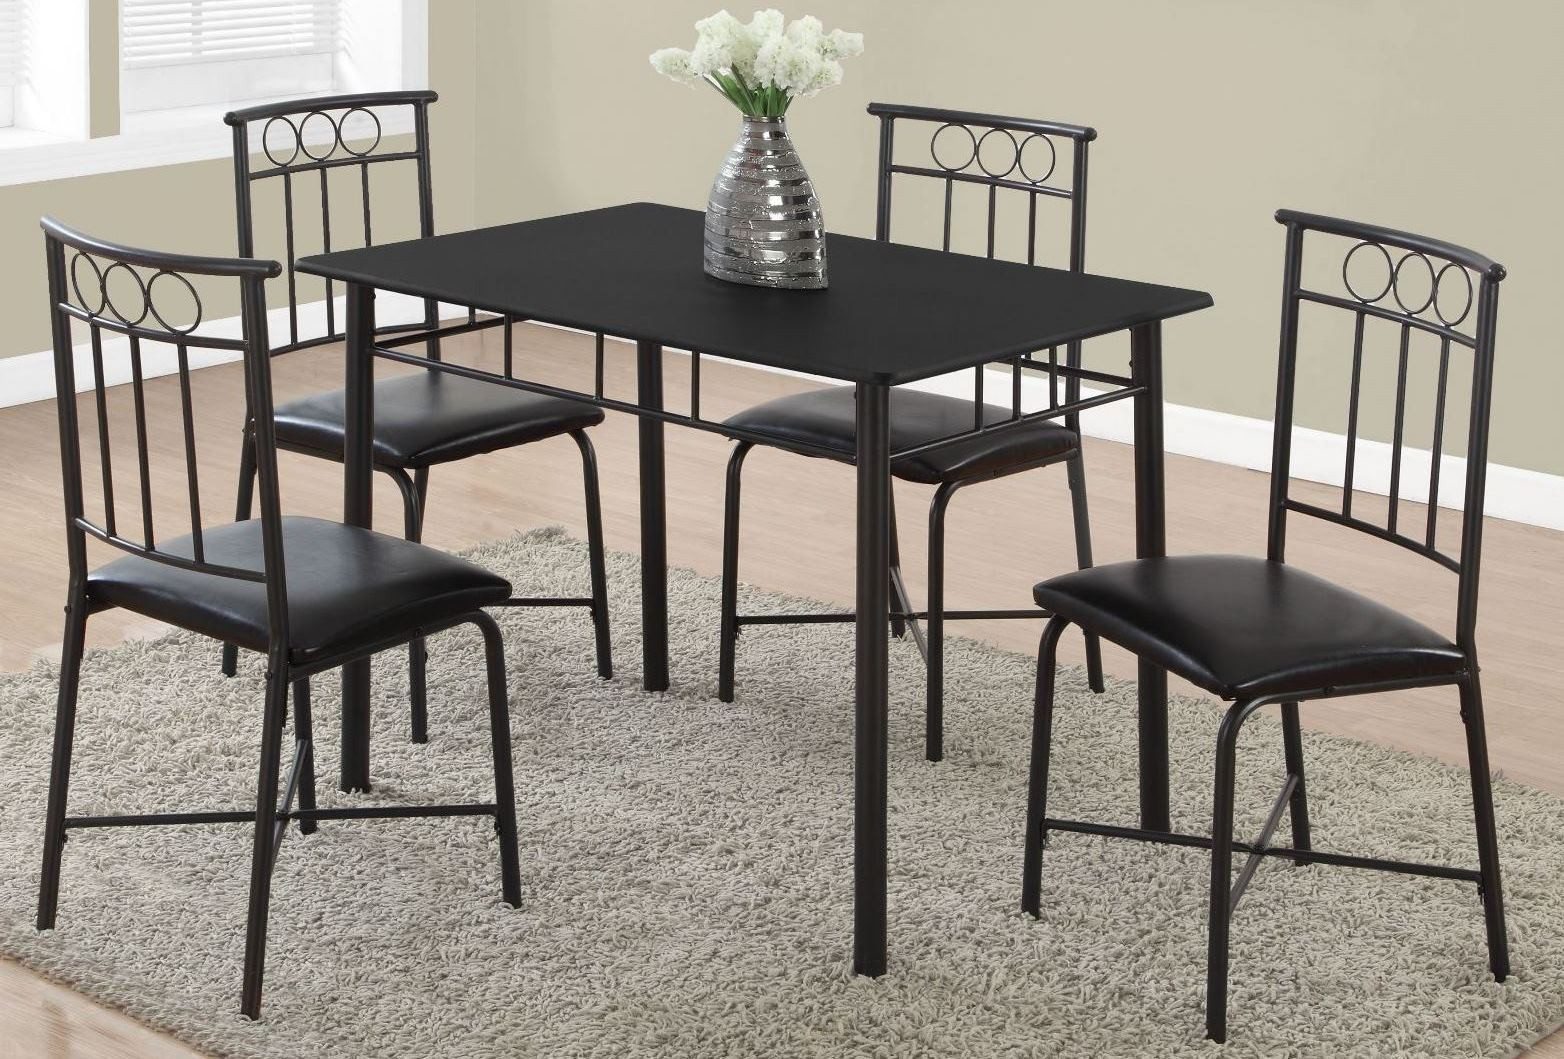 black metal 5 piece dining room set 1018 monarch